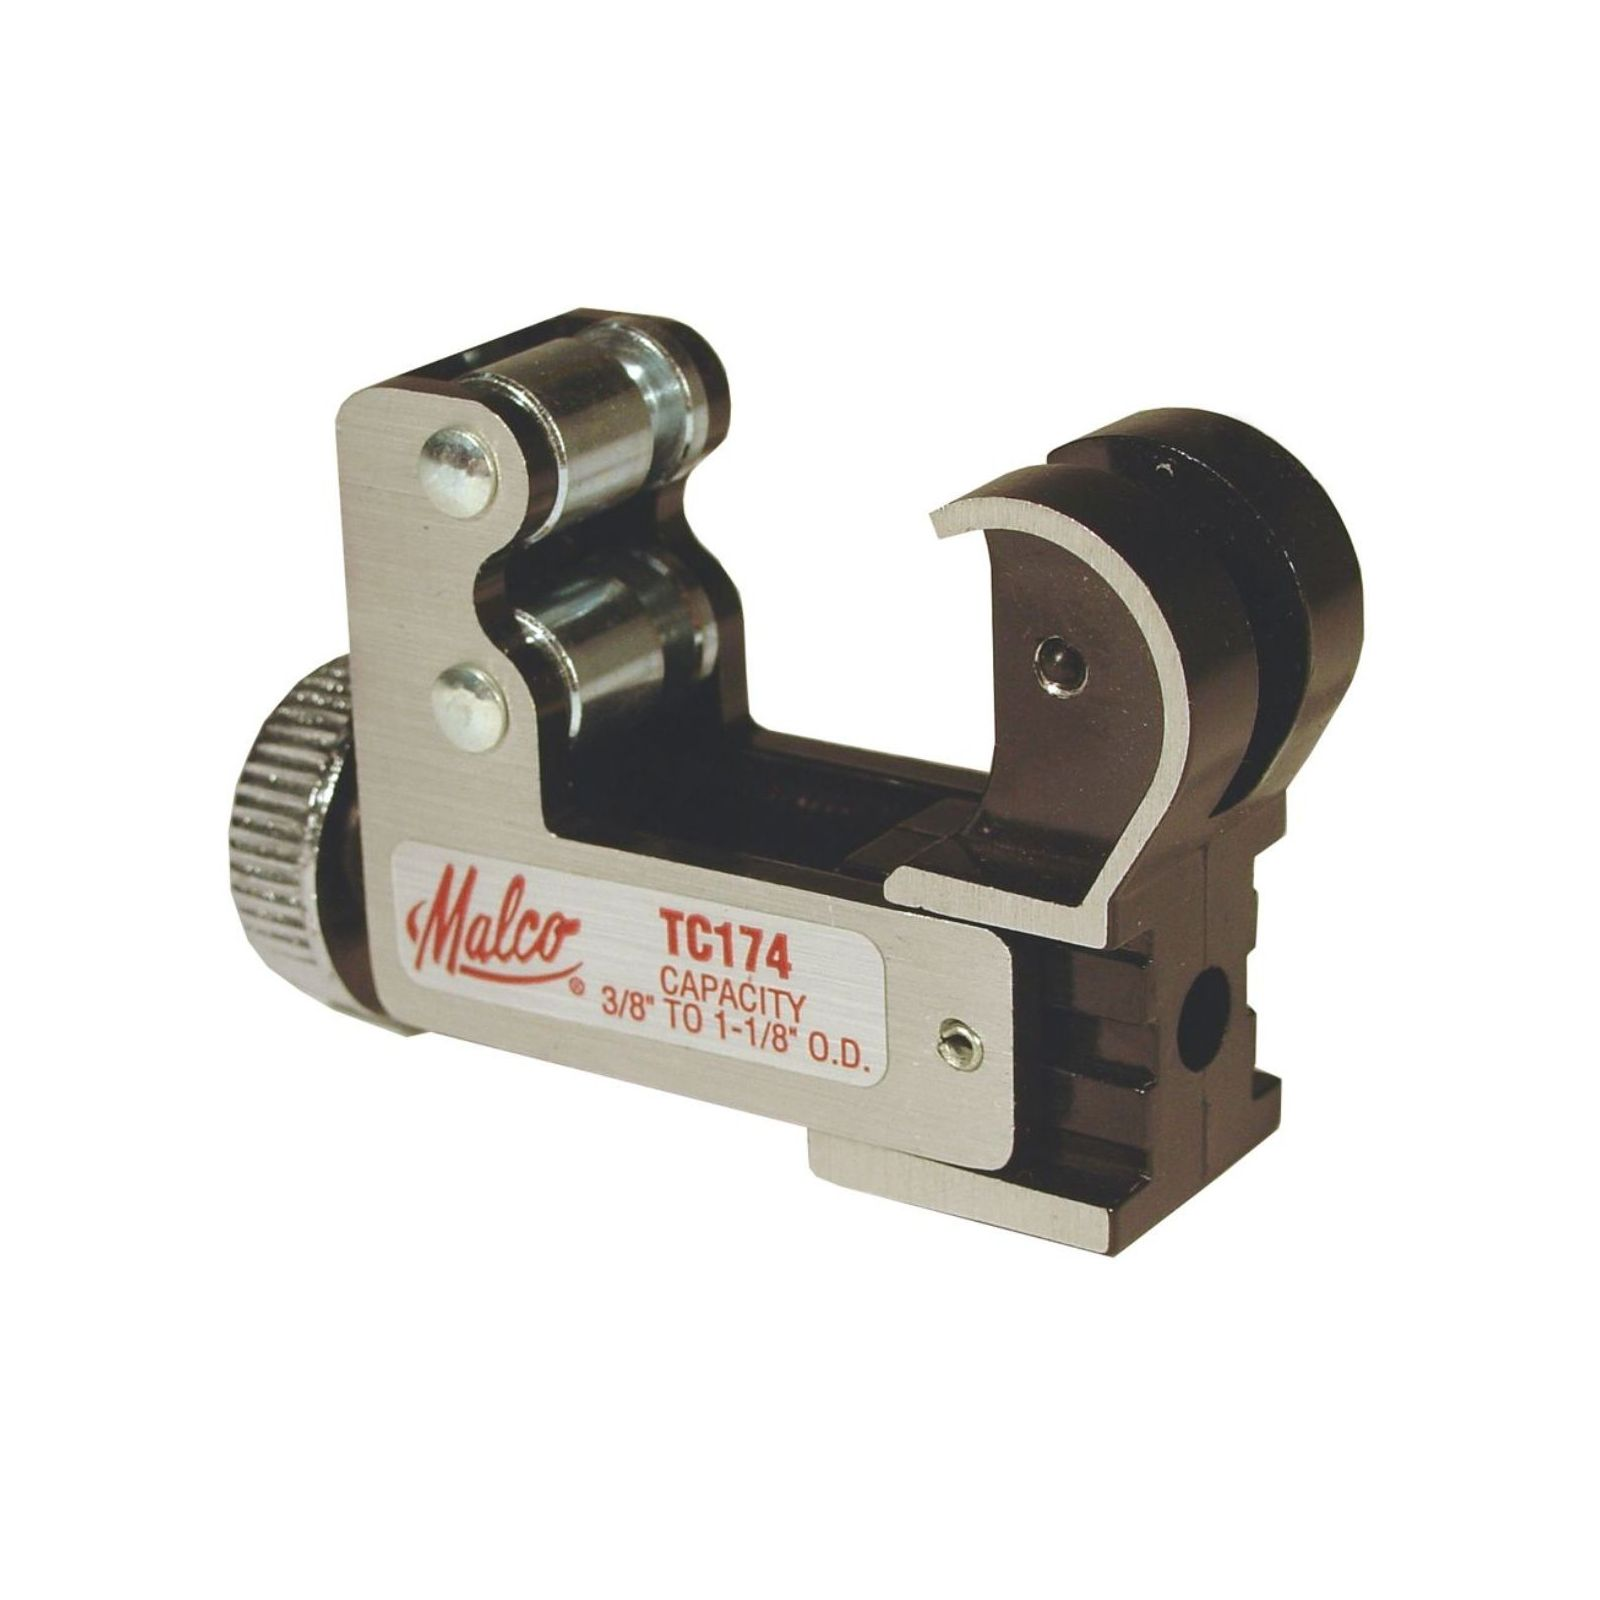 "Malco TC174 - Big Imp Tube Cutter 3/8"" to 1-1/8"""